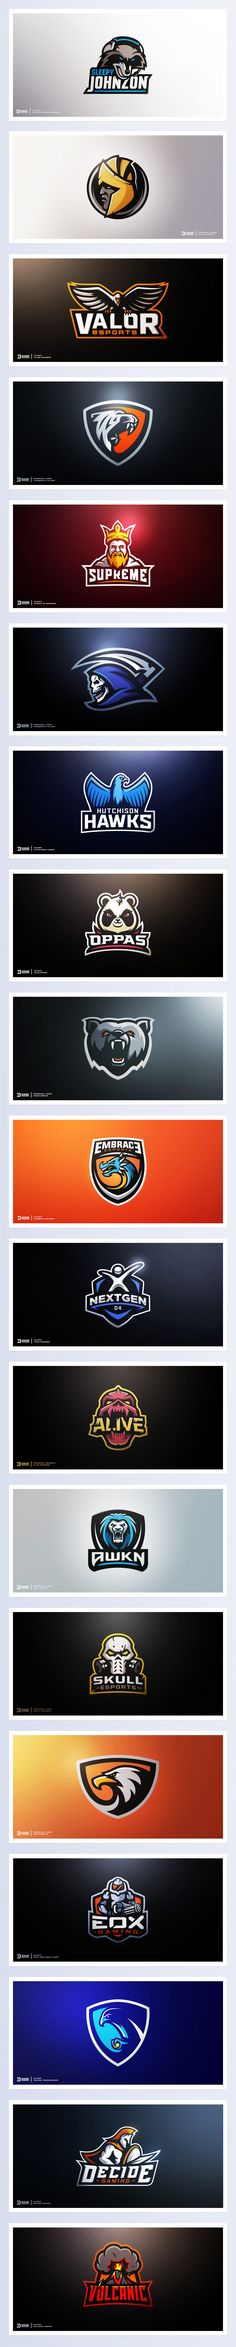 25 ideas for sport logo inspiration graphics behance Logo Esport, Typography Logo, Typography Design, Branding Design, Logo Inspiration, Gfx Design, Graphic Design, Logo Professionnel, Logos Online